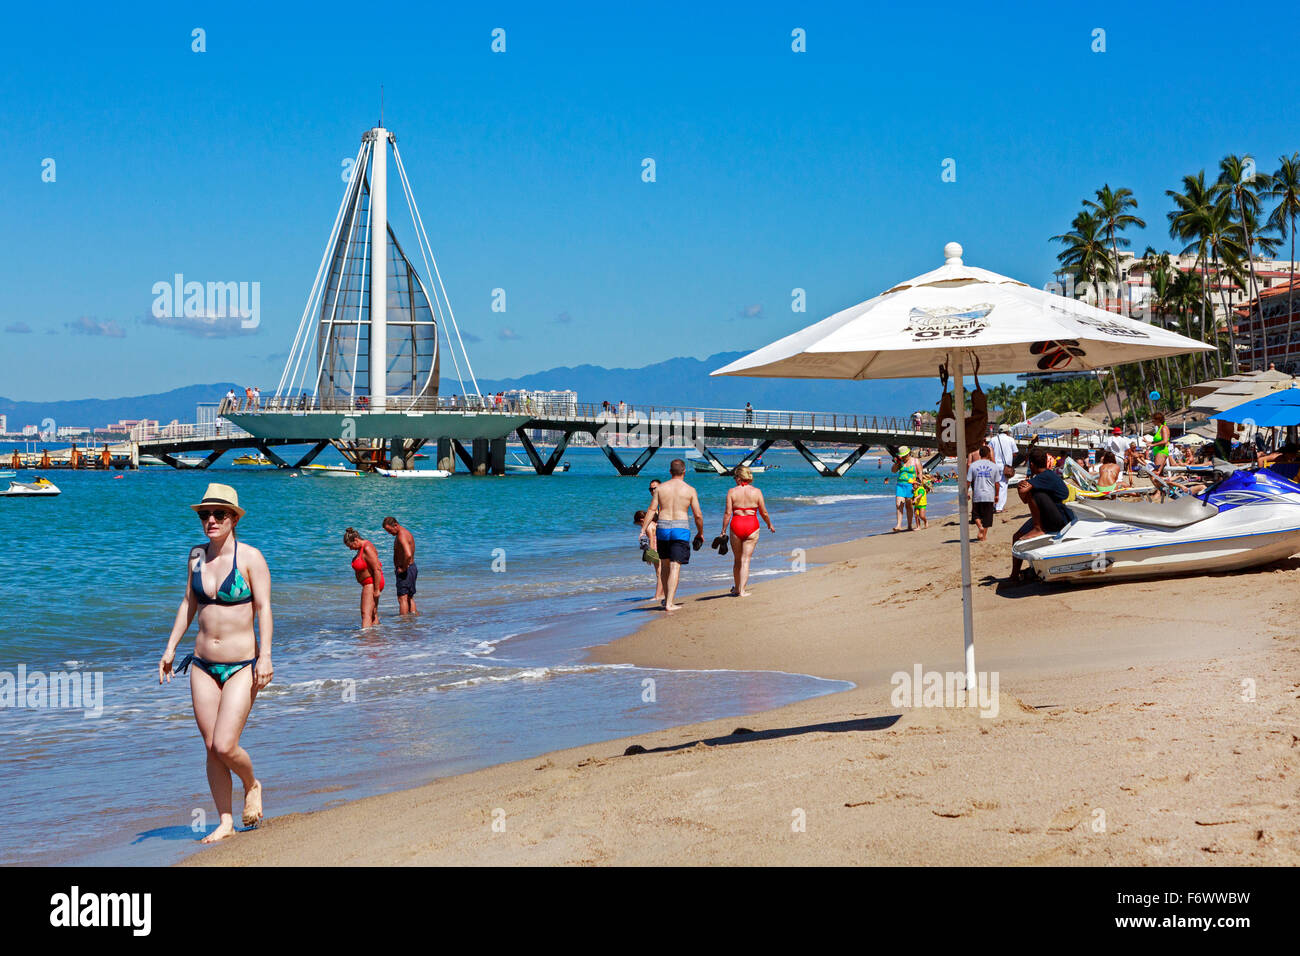 Beach at Zona Romantica, old town of Puerto Vallarta, Mexico with the Los Muertos Pier in the background Stock Photo